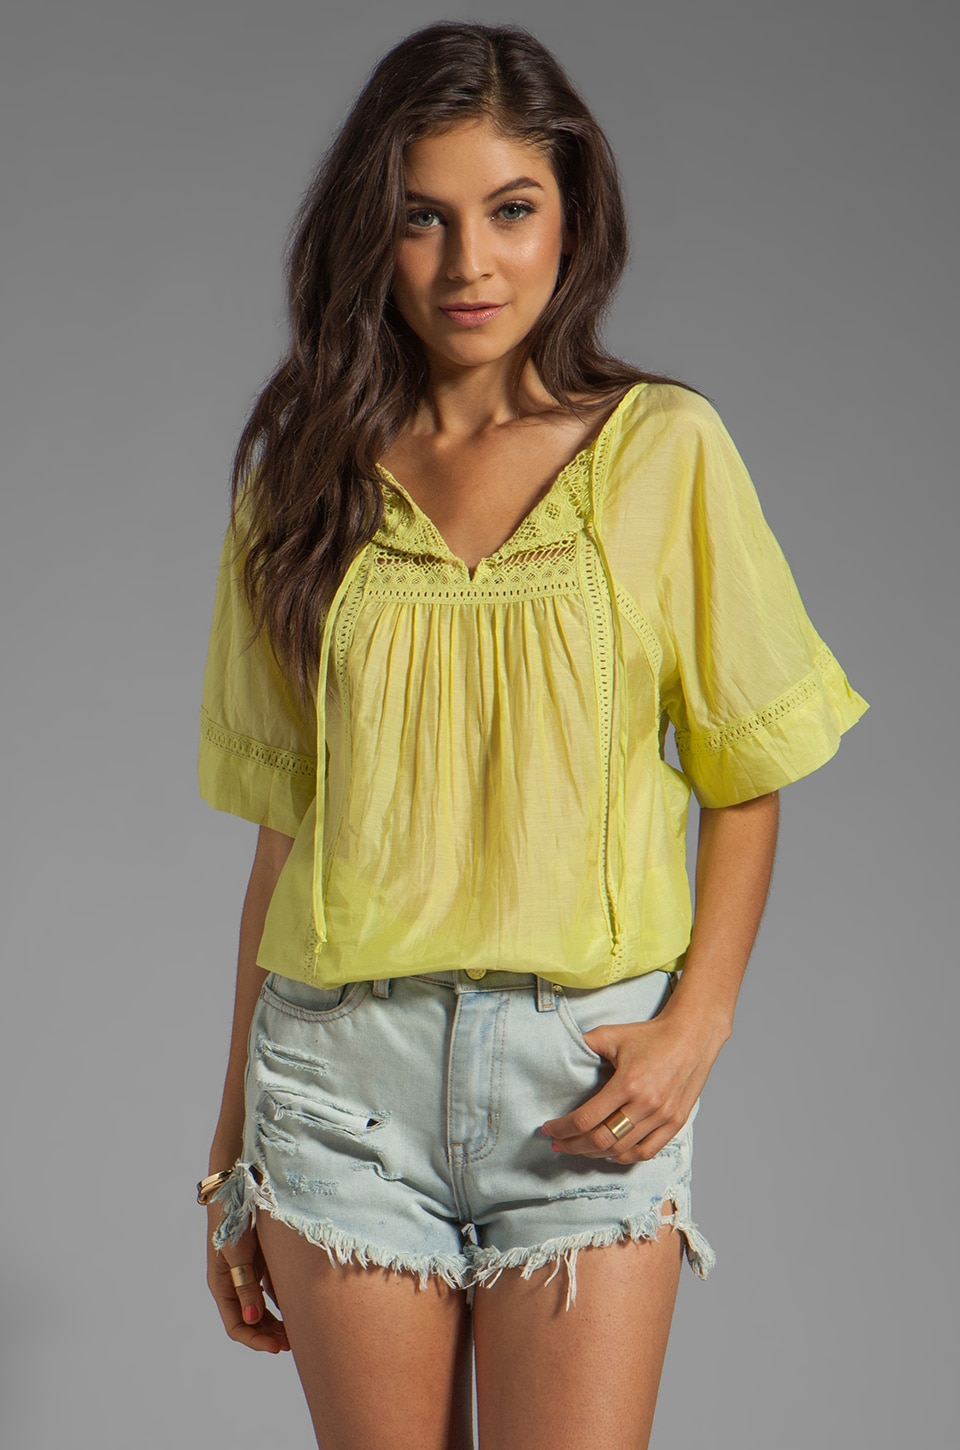 Twelfth Street By Cynthia Vincent Peasant Blouse in Citron